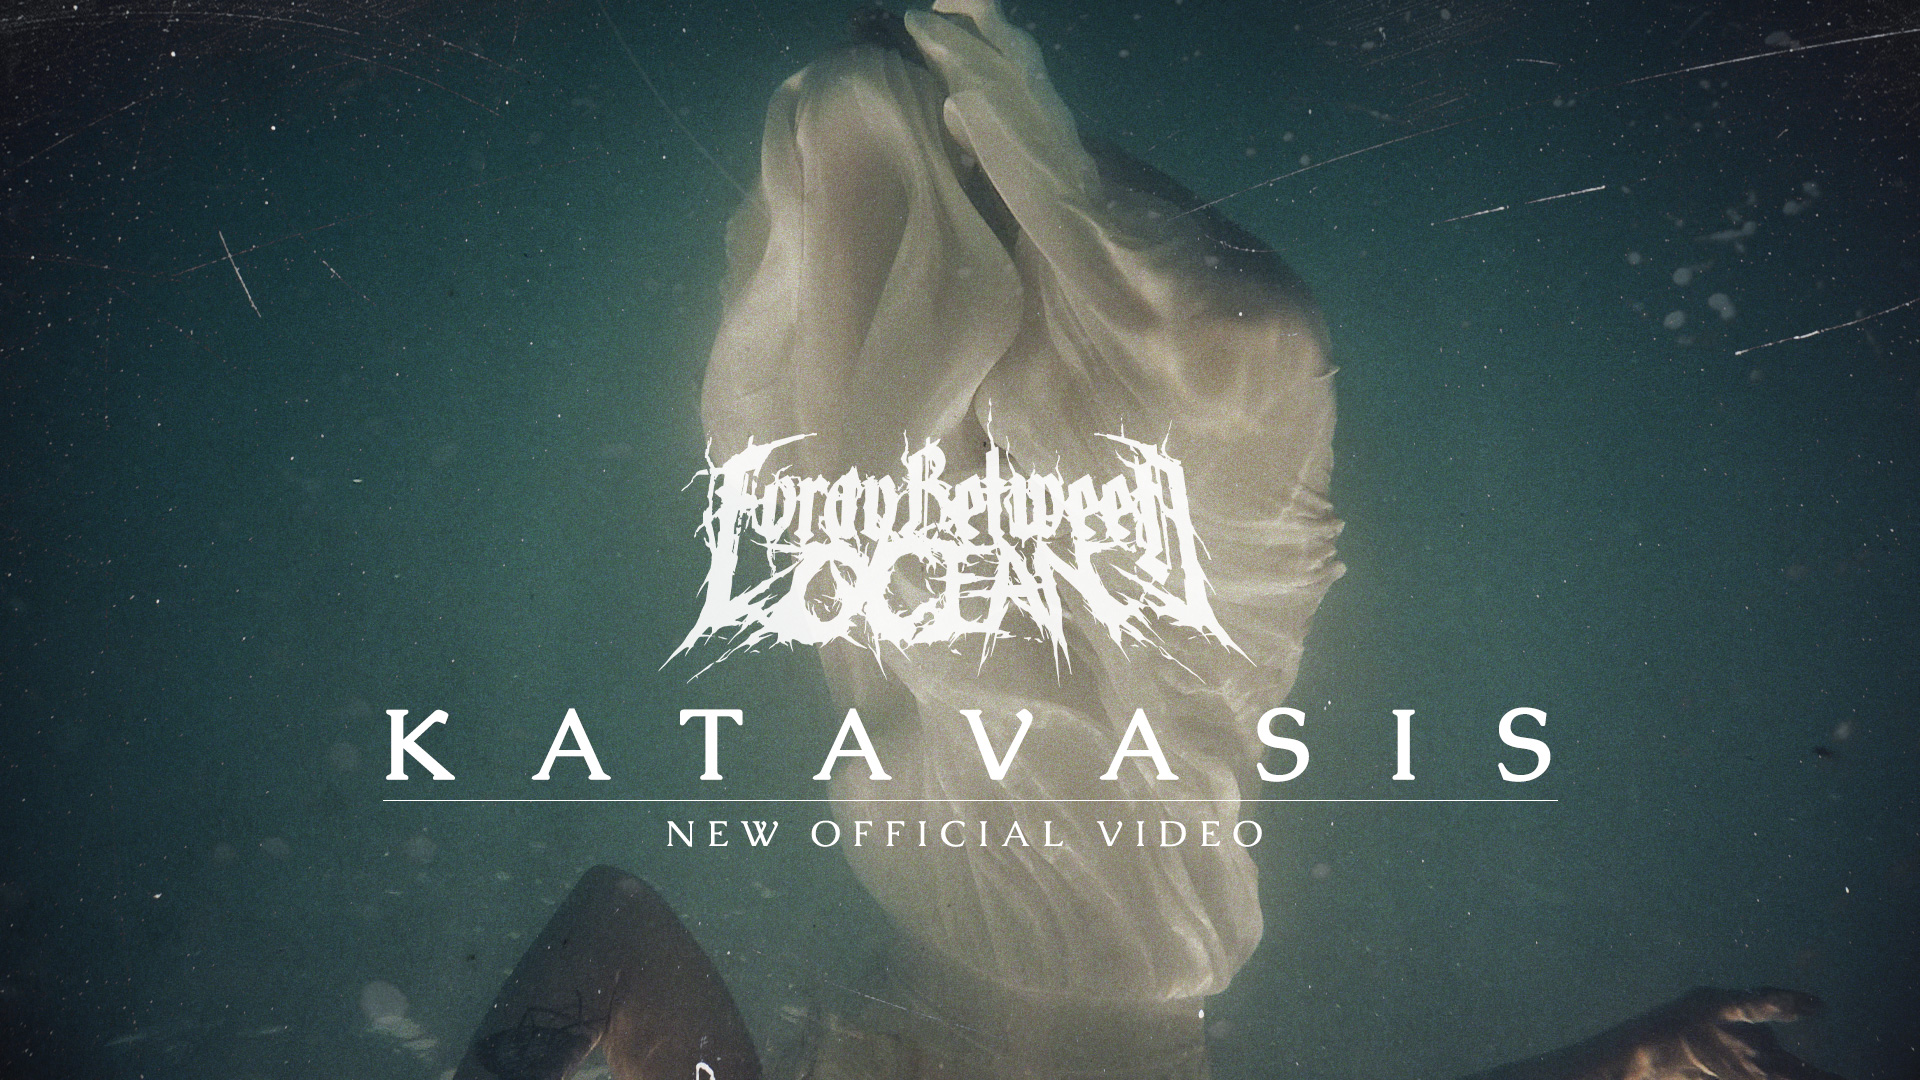 """FORAY BETWEEN OCEAN has released a new video clip for the song """"Katavasis"""""""